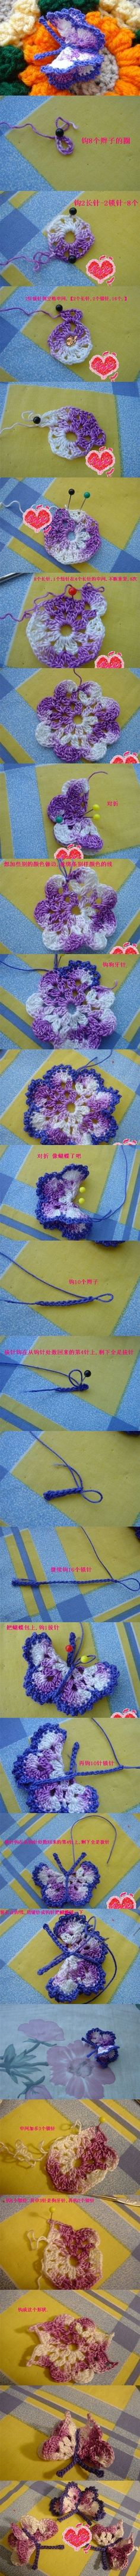 Very nice crochet butterfly and easy to perform. In the style of Irish Crochet. Use such crochet butterfly for accessories like head band, hair pin, brooch